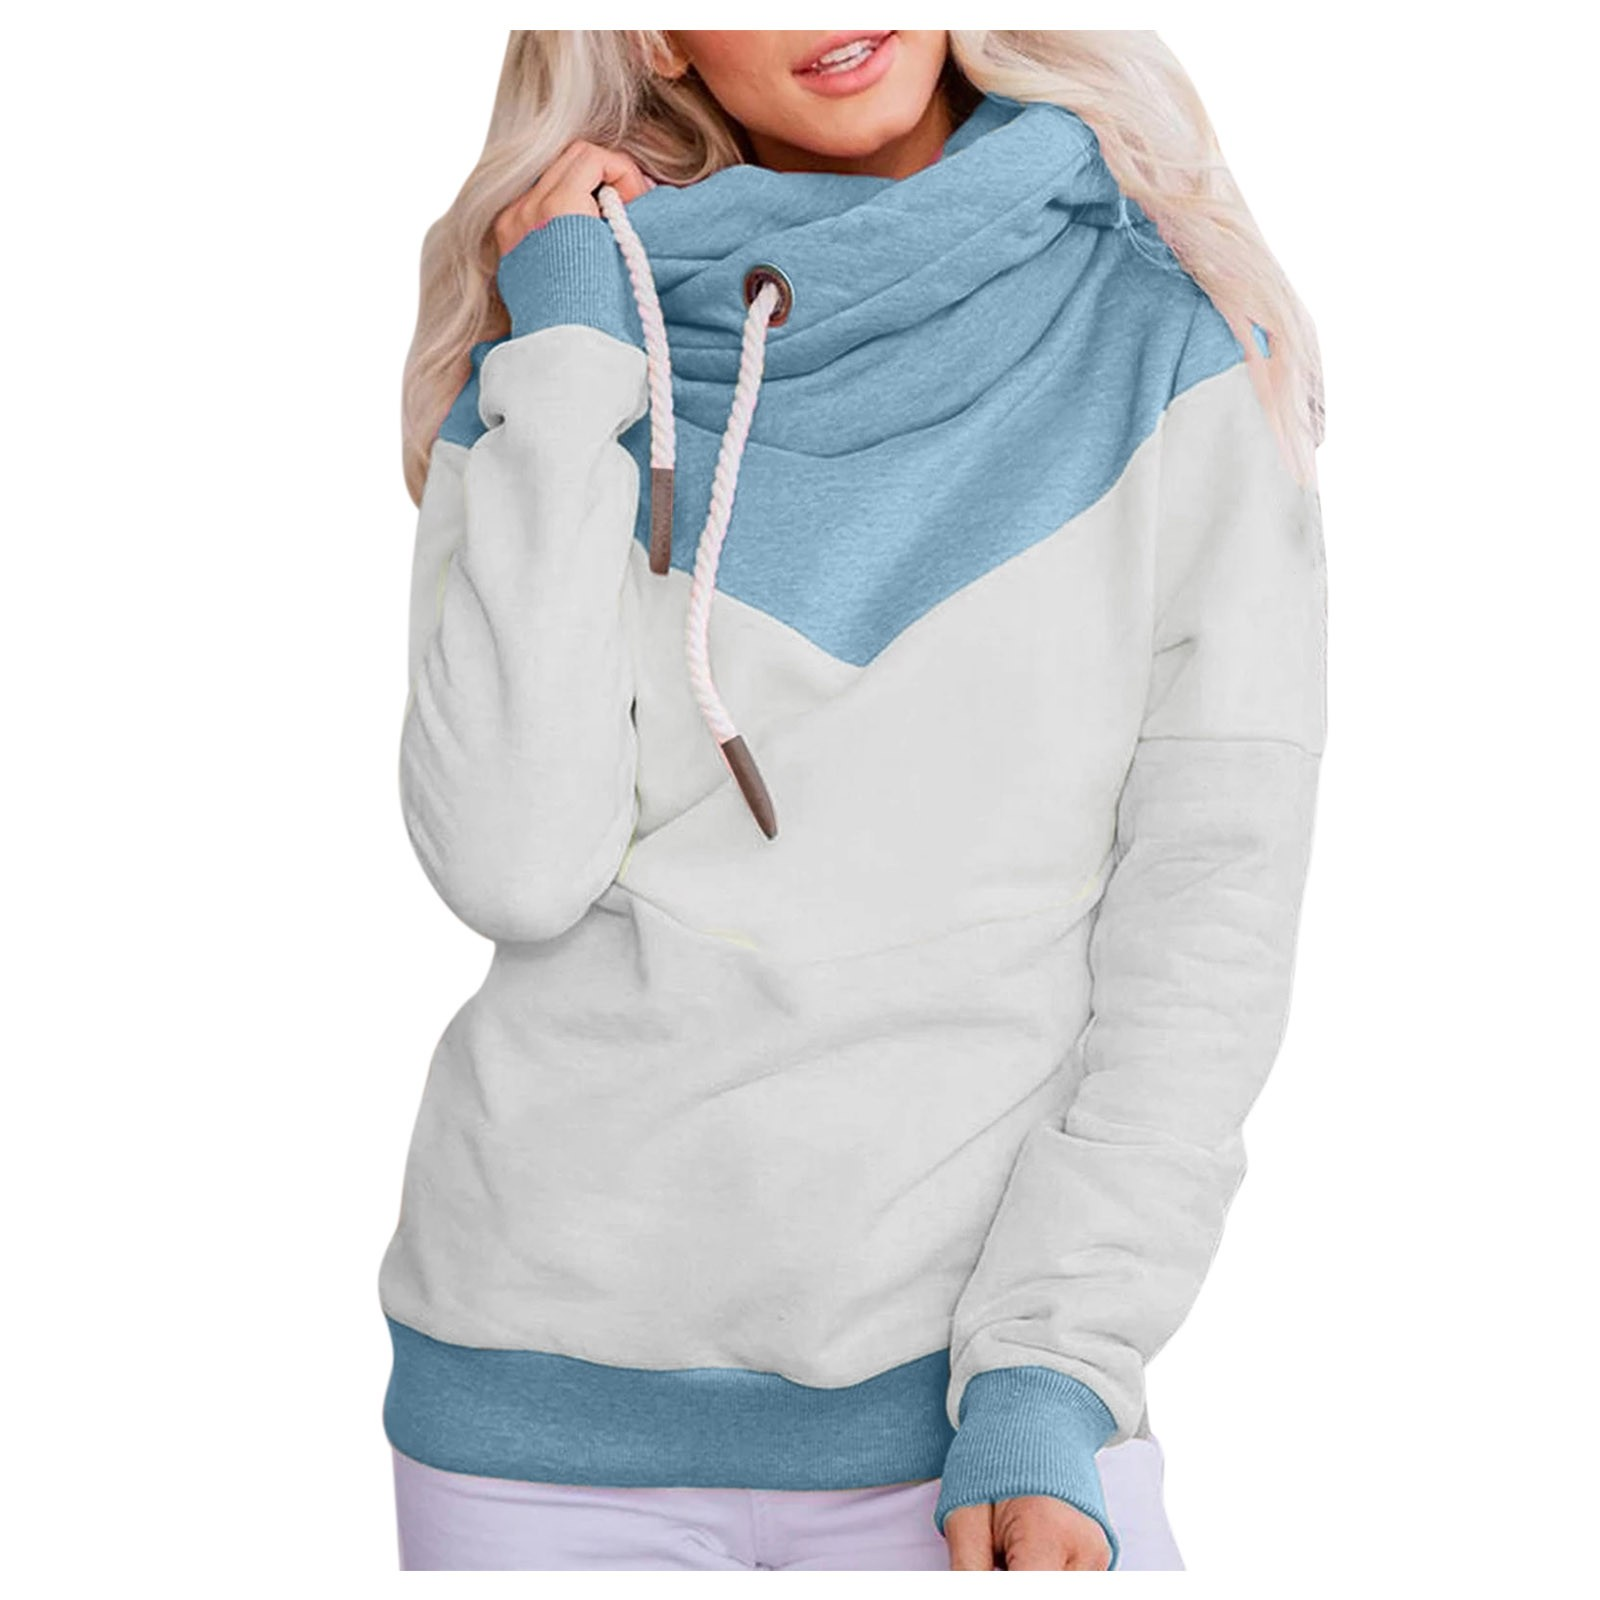 Hot Sale Women Casual Solid Contrast Long Sleeve Hoodie Sweatshirt Patchwork Printed Tops Sudaderas Mujer 2020 F Fast Ship 16